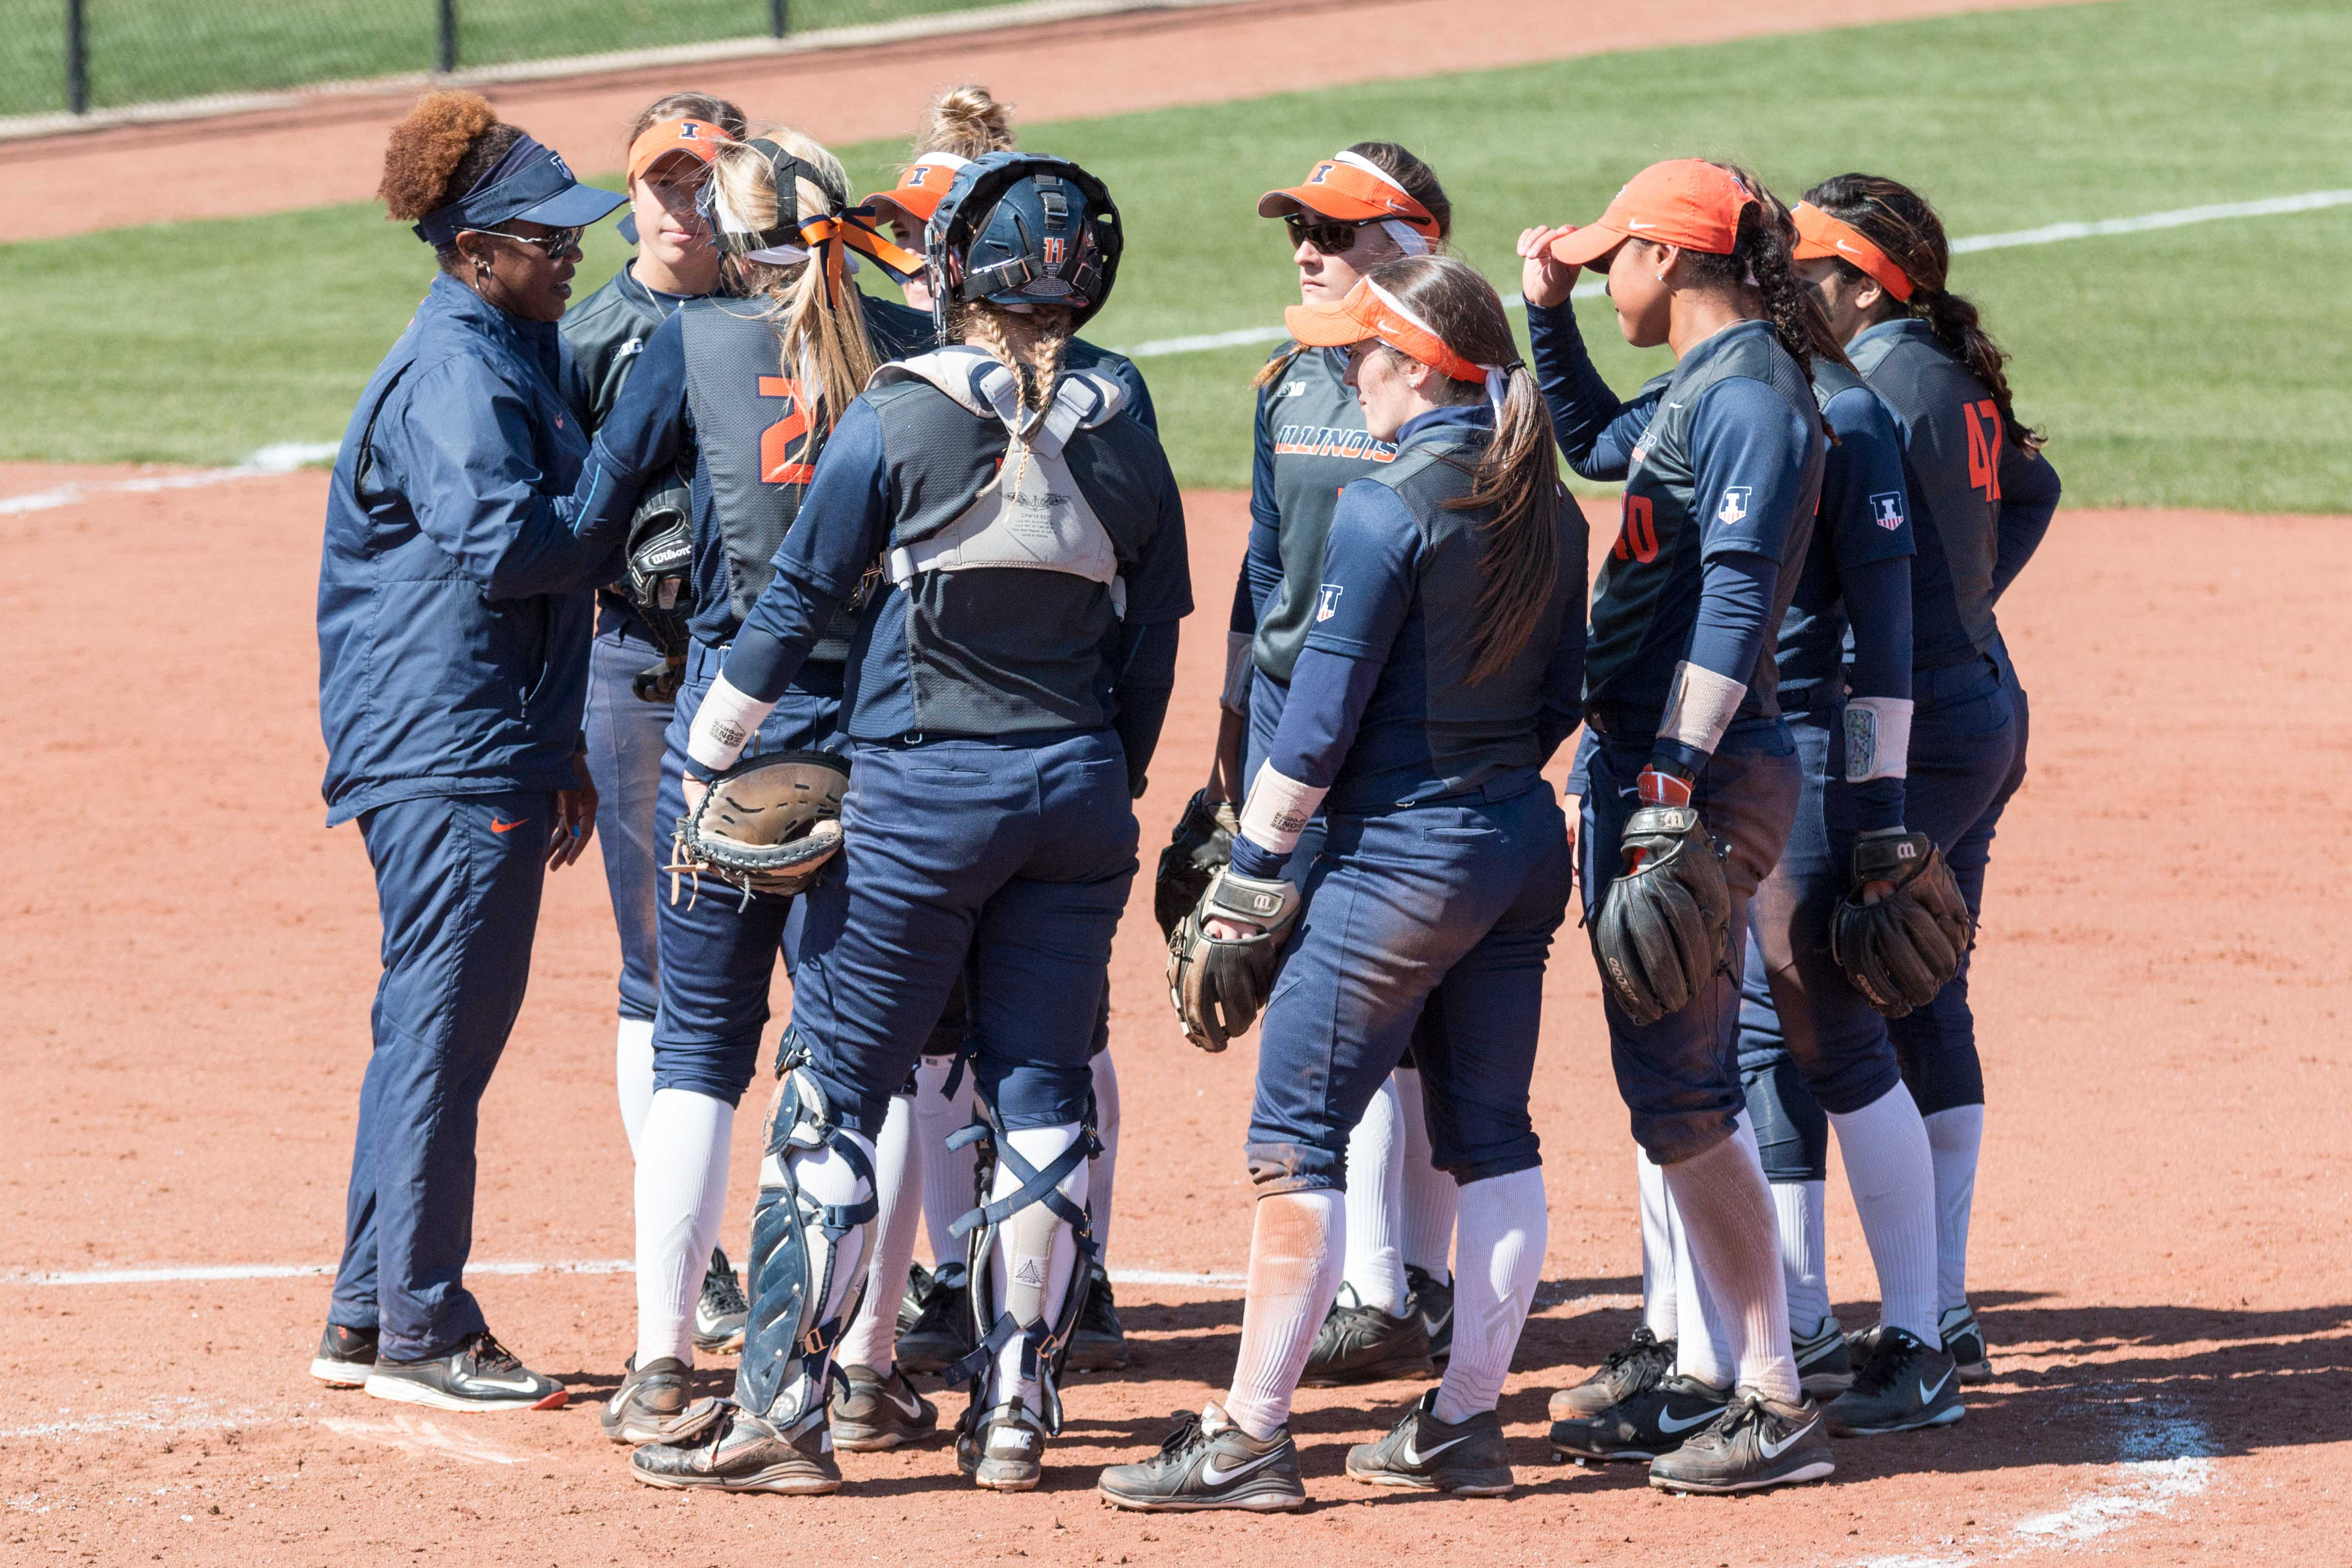 Illinois head coach Tyra Perry talks to her team during game one of the doubleheader against Nebraska at Eichelberger Field on Saturday, March 26. The Illini won game one 8-3 and game two 10-2.